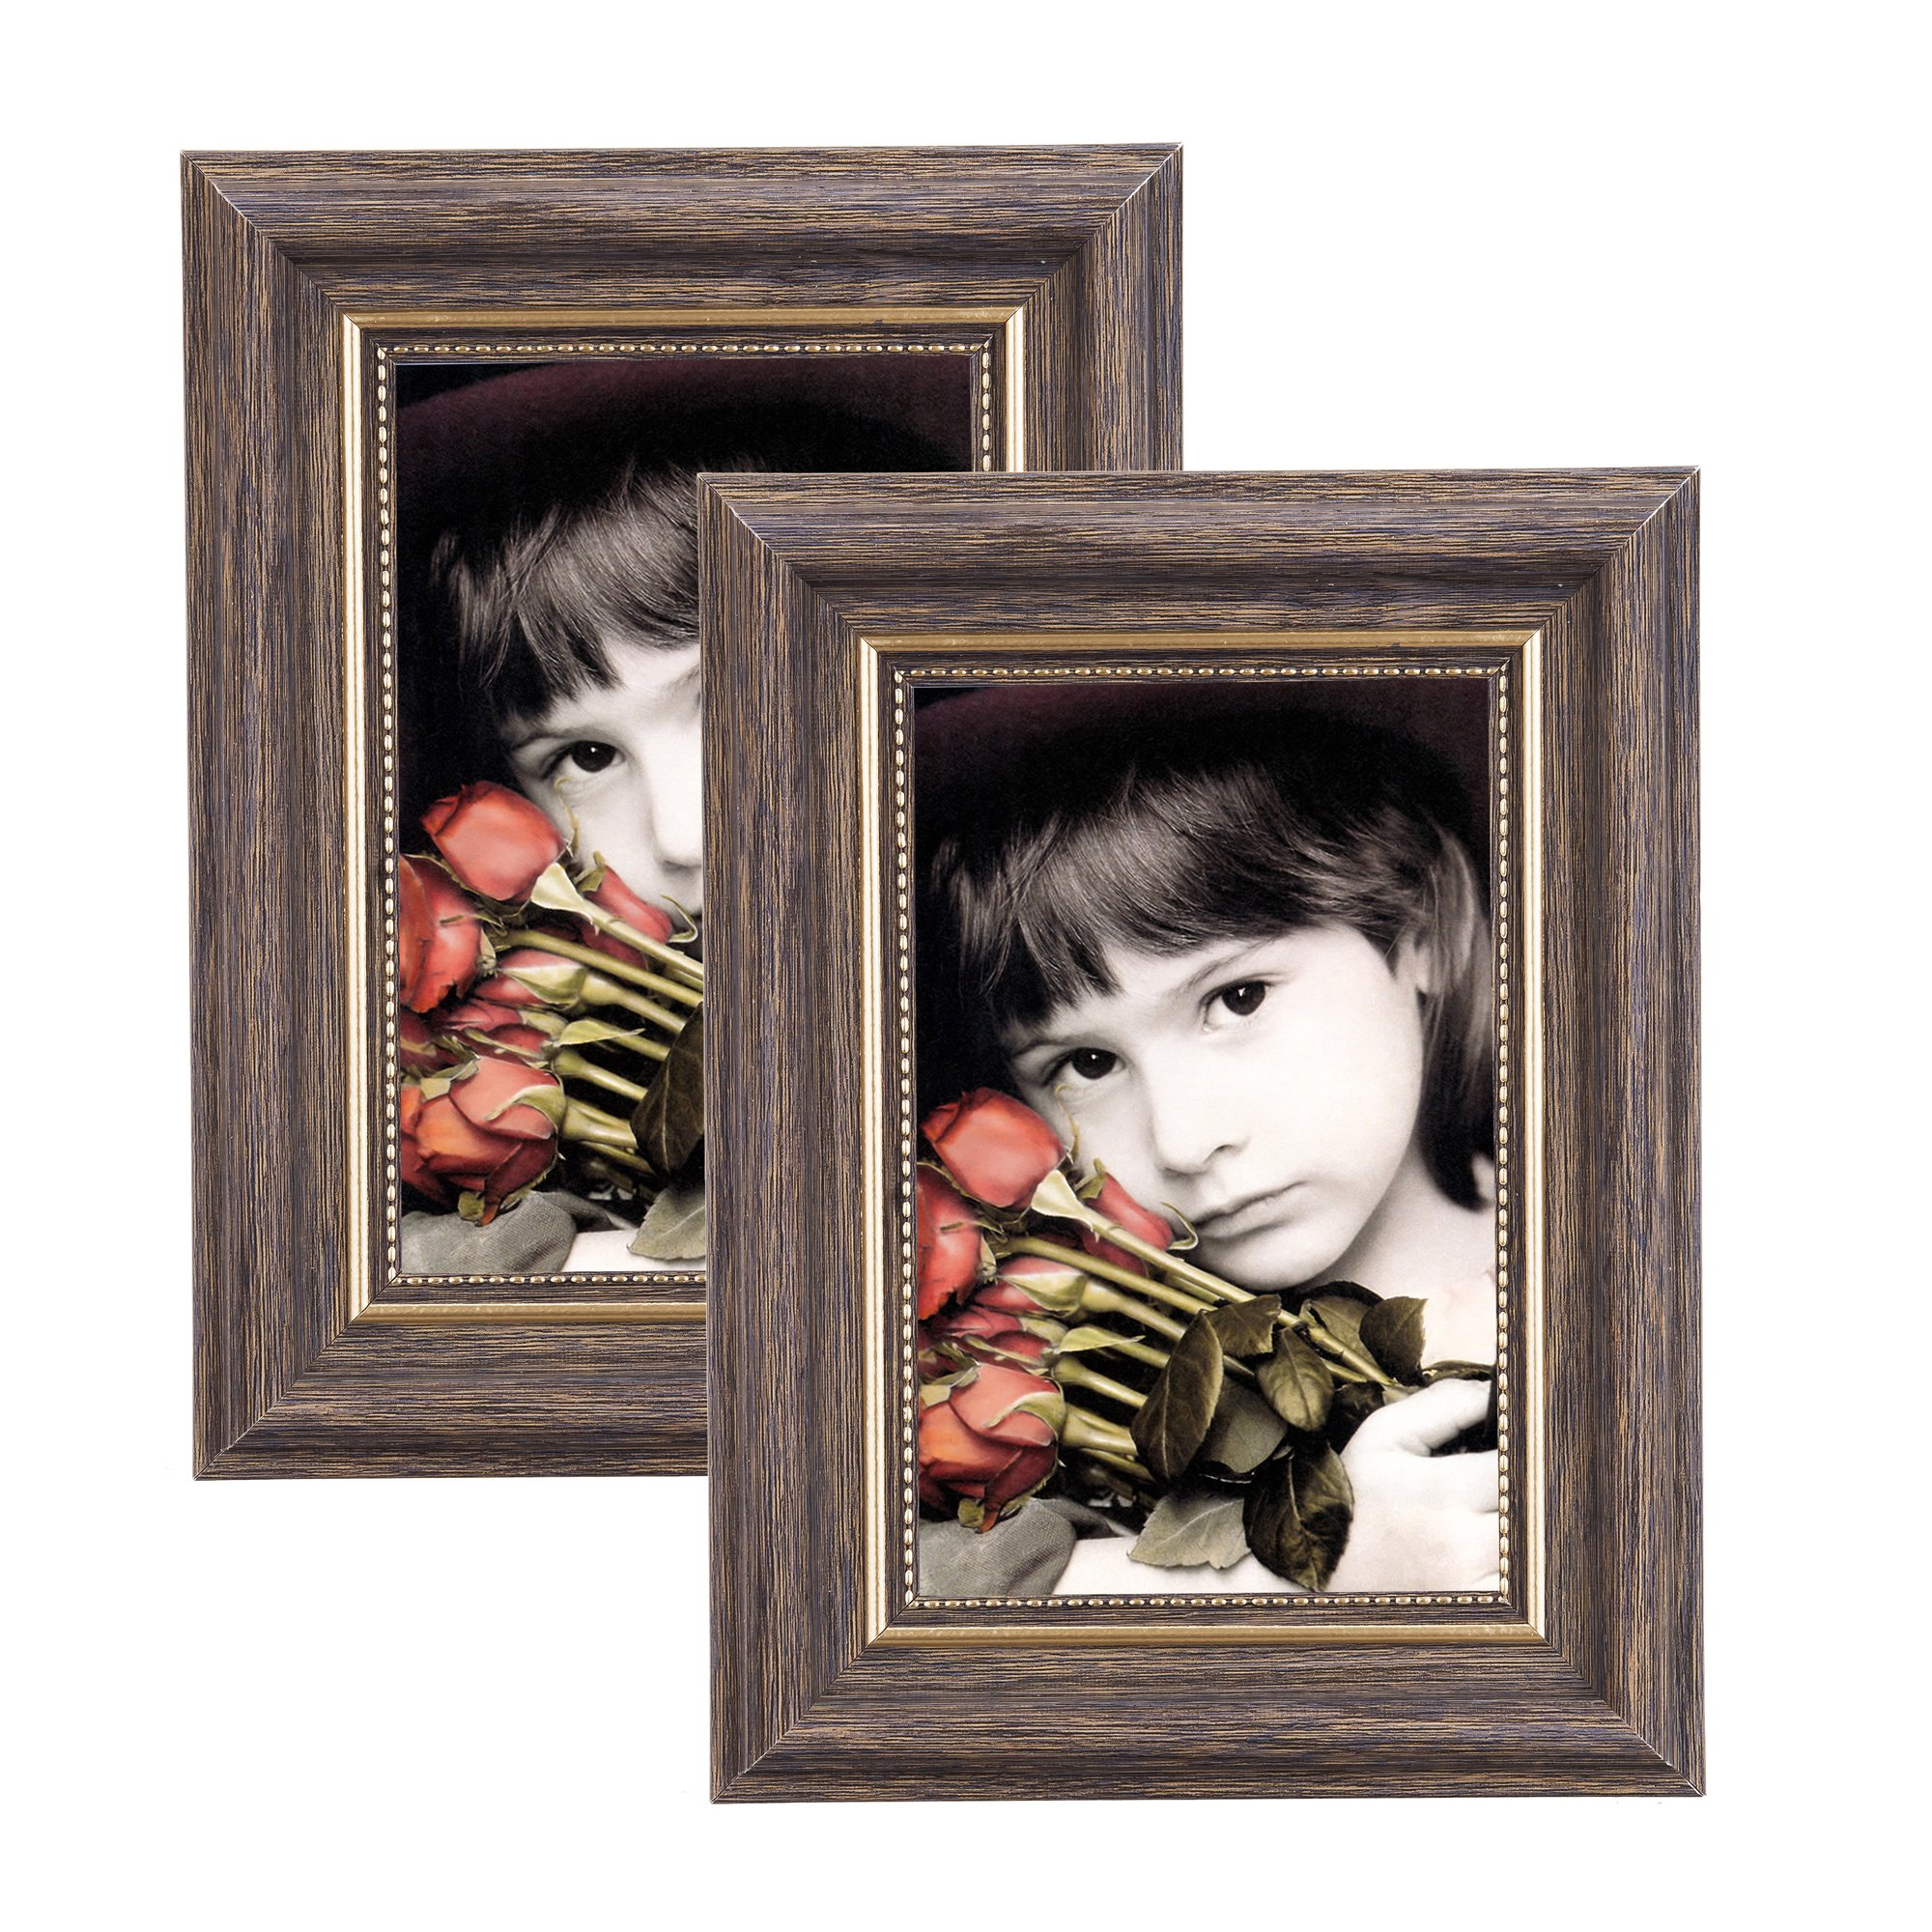 Msicyness 8x10 Picture Frame for Wall Mounting 2 Pack Vintage Color Photo Frames with Mat Decor for Standing TableTop Display